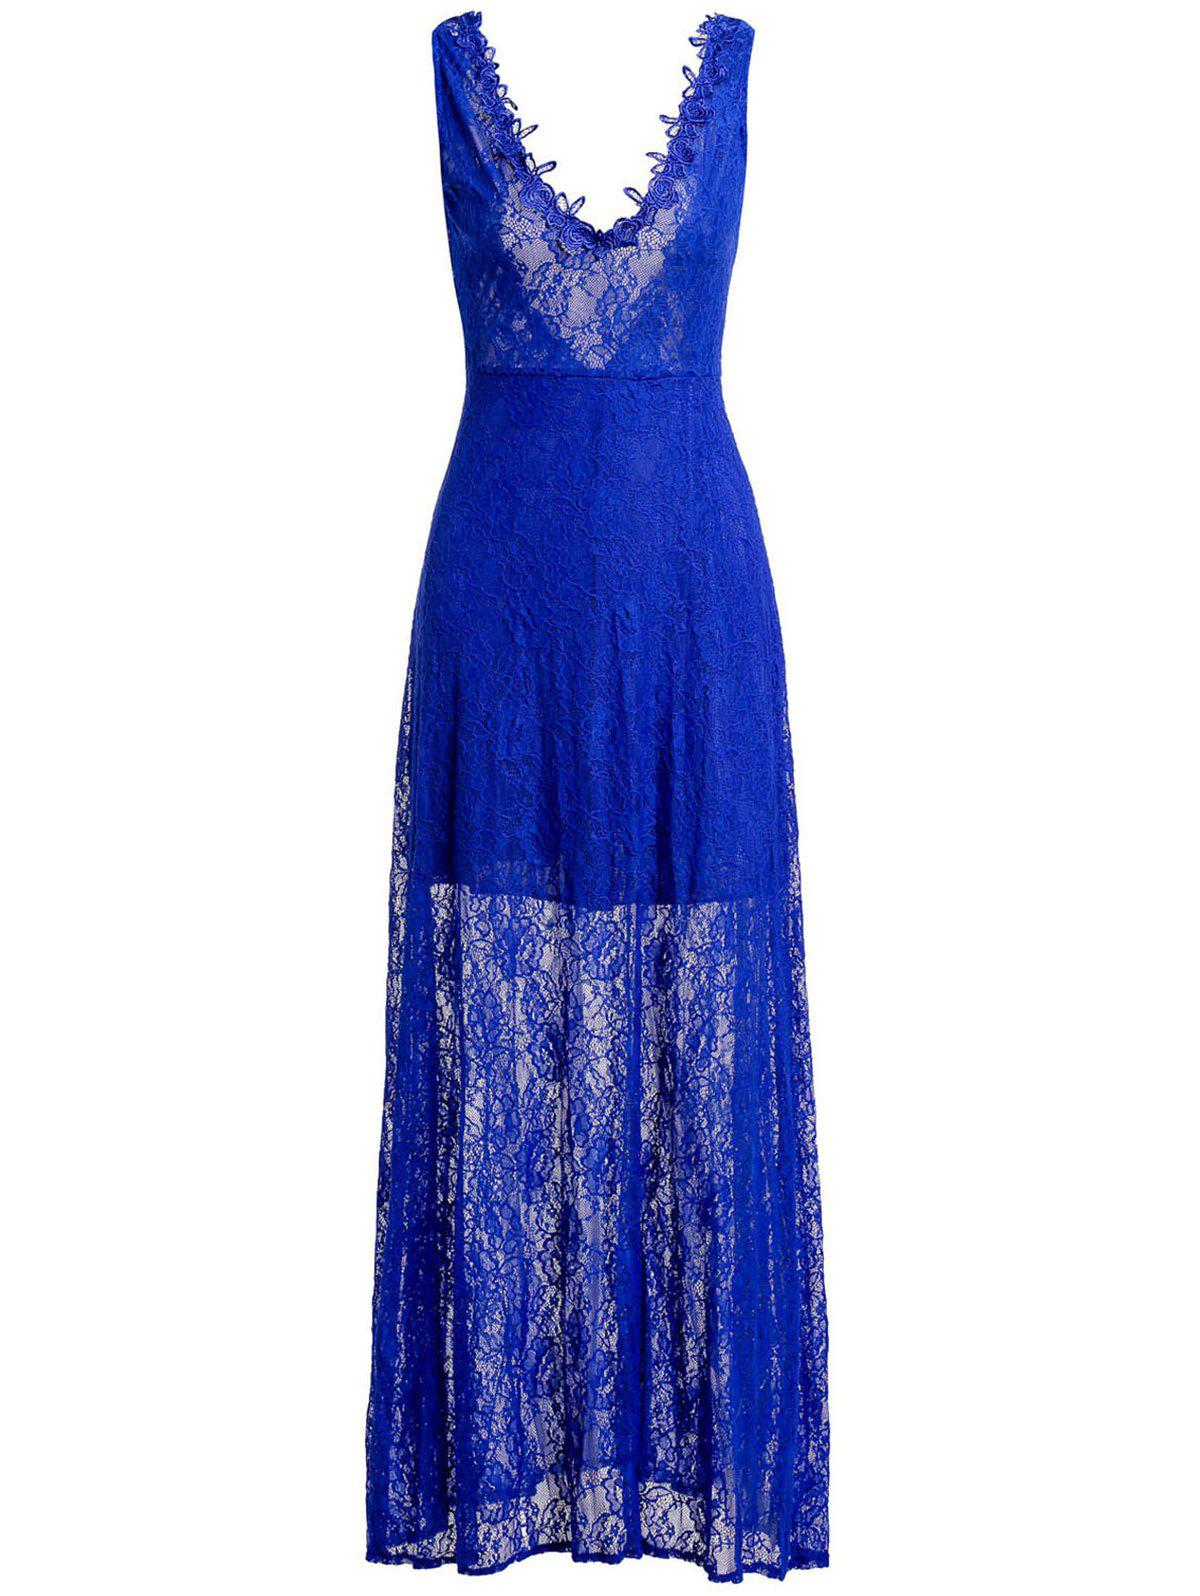 Sexy Lace Sleeveless Plunging Neck Backless Women's Dress - BLUE S